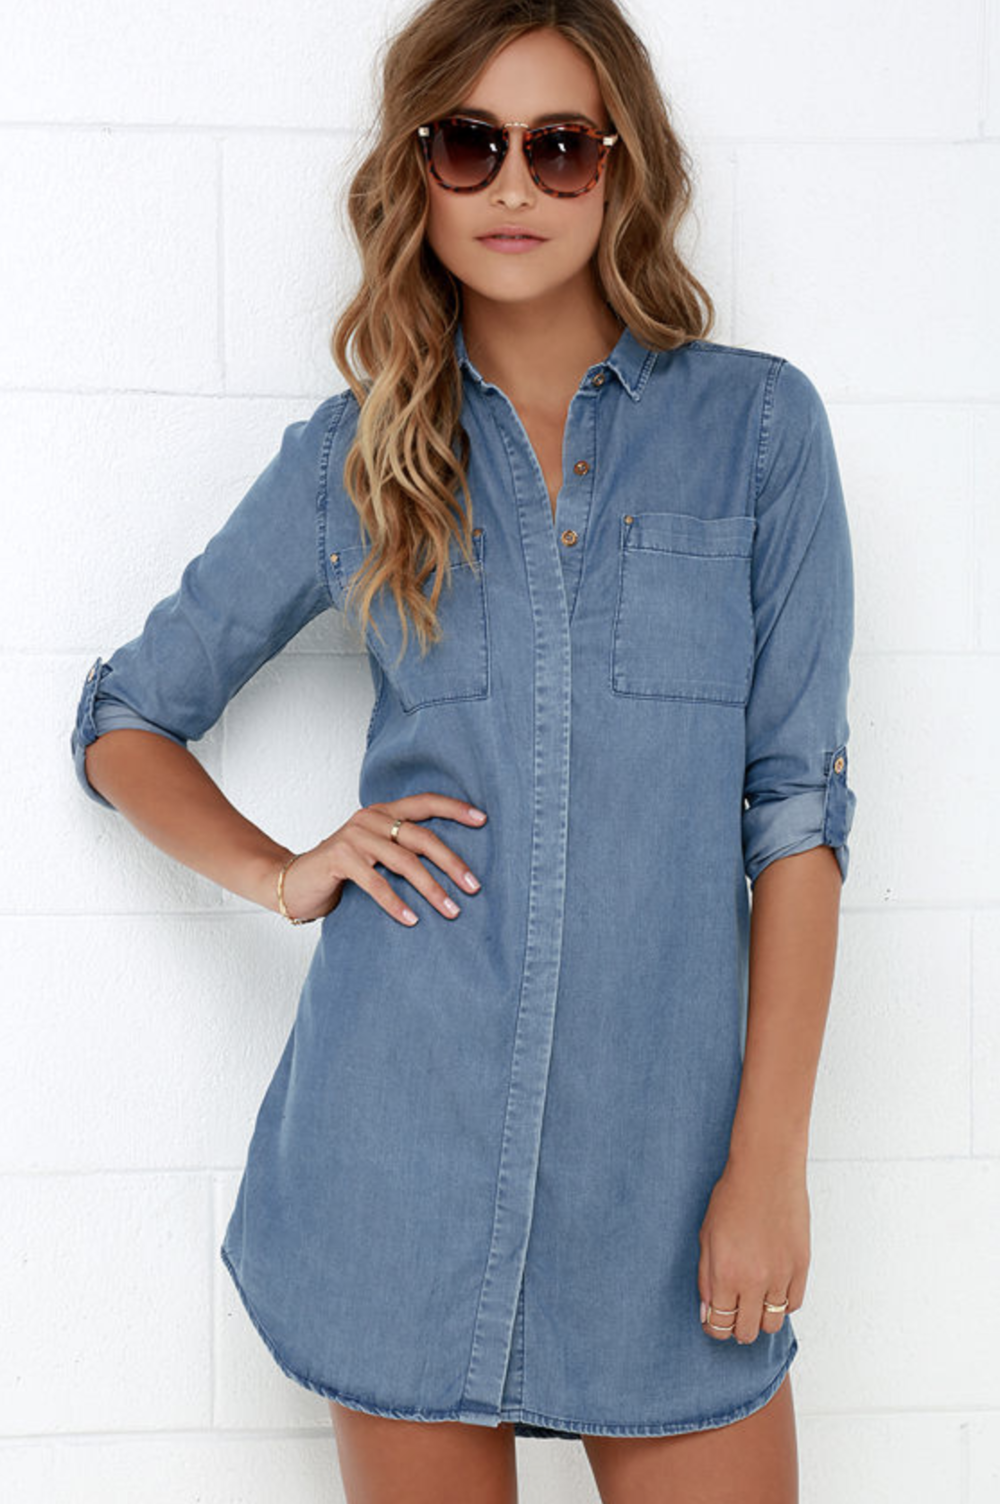 If you like your dresses cute and to the point, then you will adore our Lulus Shirt and Sweet Blue Chambray Shirt Dress! Soft and lightweight woven chambray is formed to a classic collared neckline, and long button-cuff sleeves, that can be worn rolled up thanks to button tabs. A hidden button placket joins the chic, shift bodice, framed by two patch pockets.